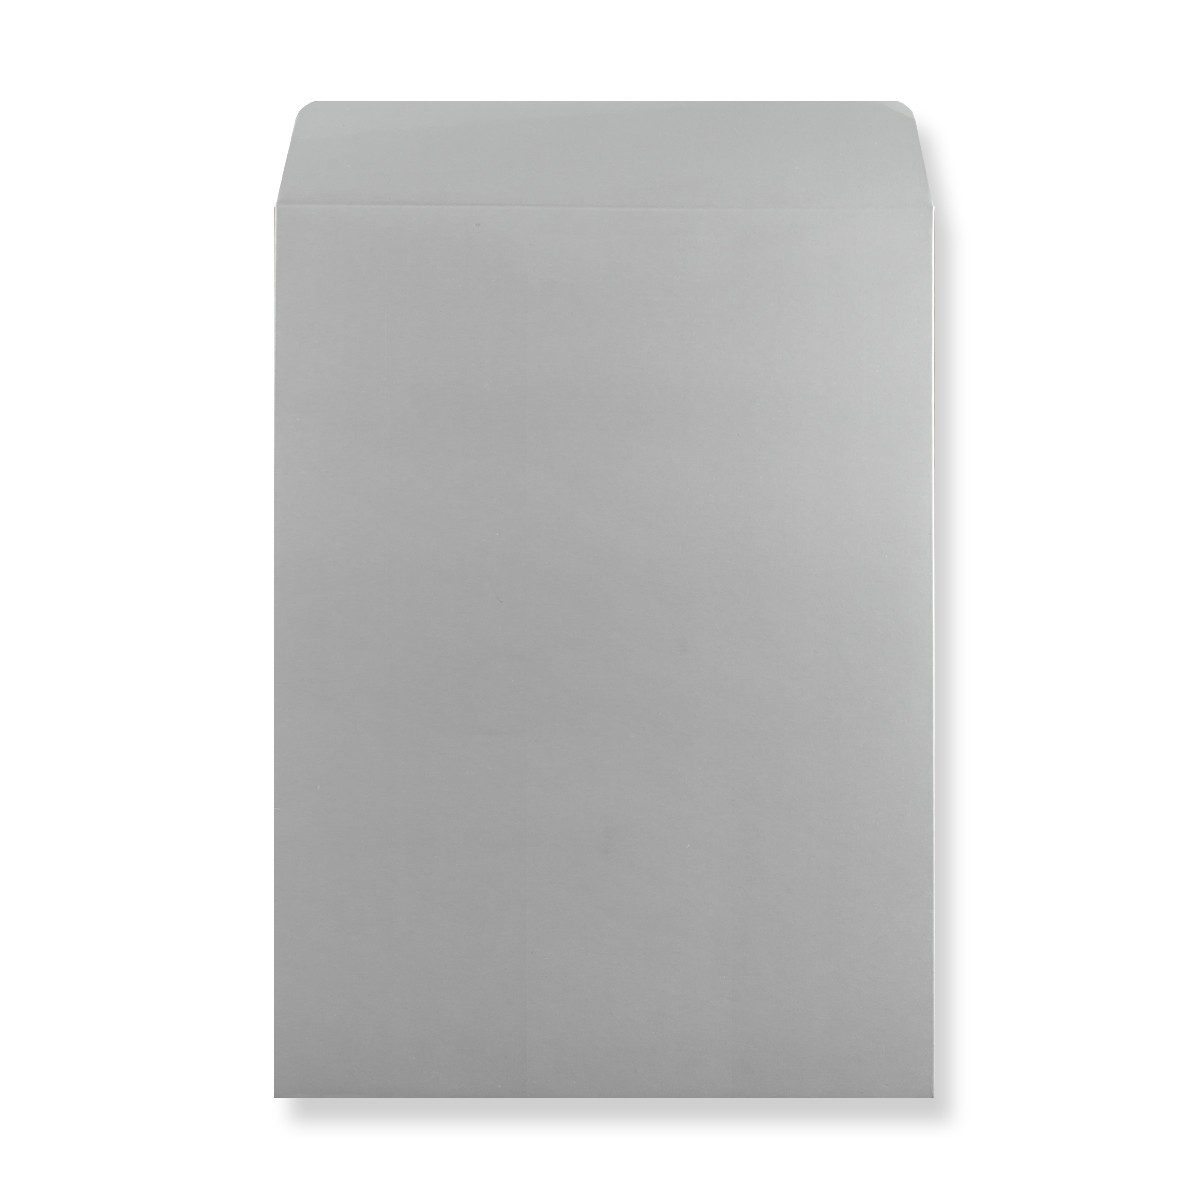 C4 SILVER ALL BOARD ENVELOPES